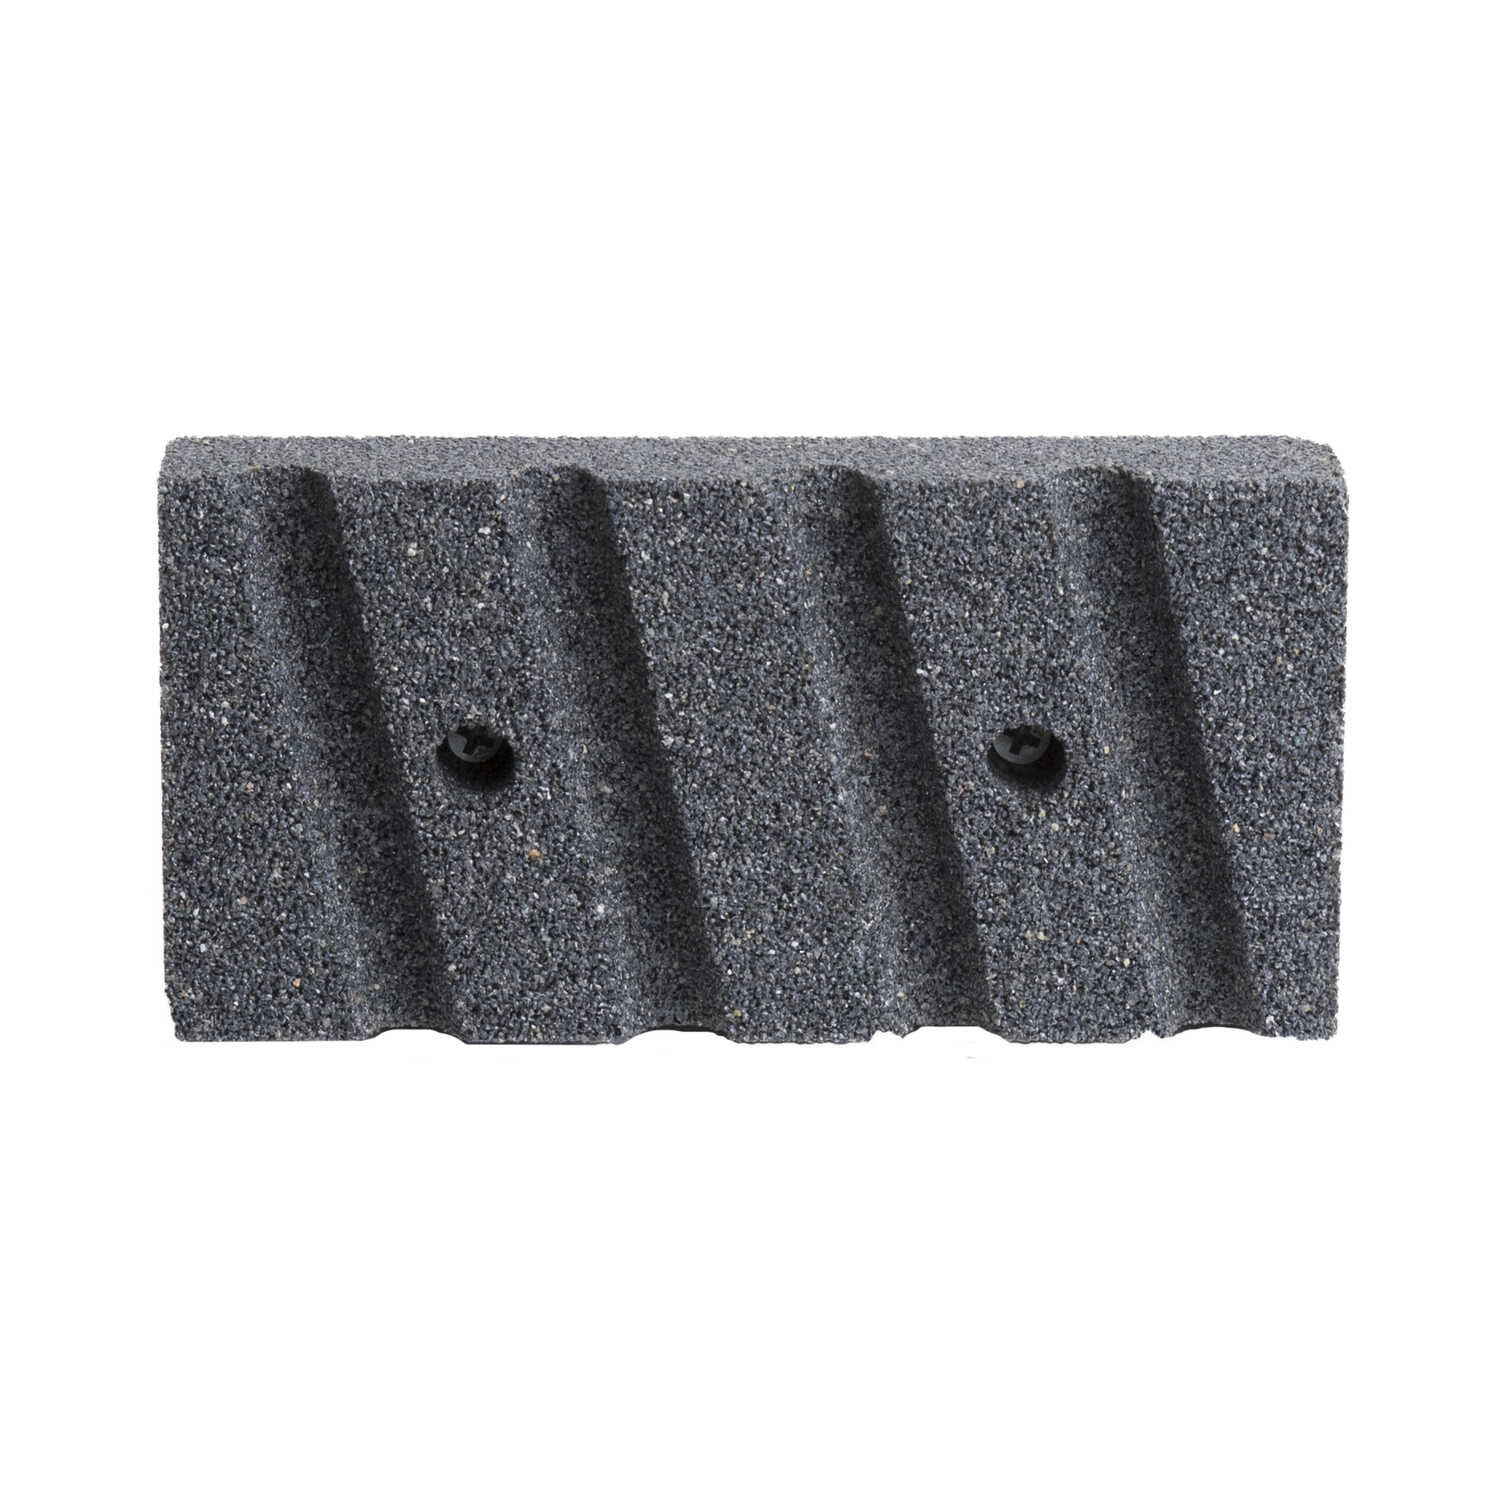 Marshalltown  3 in. W x 6 in. L Coarse  20 Grit Rub Brick